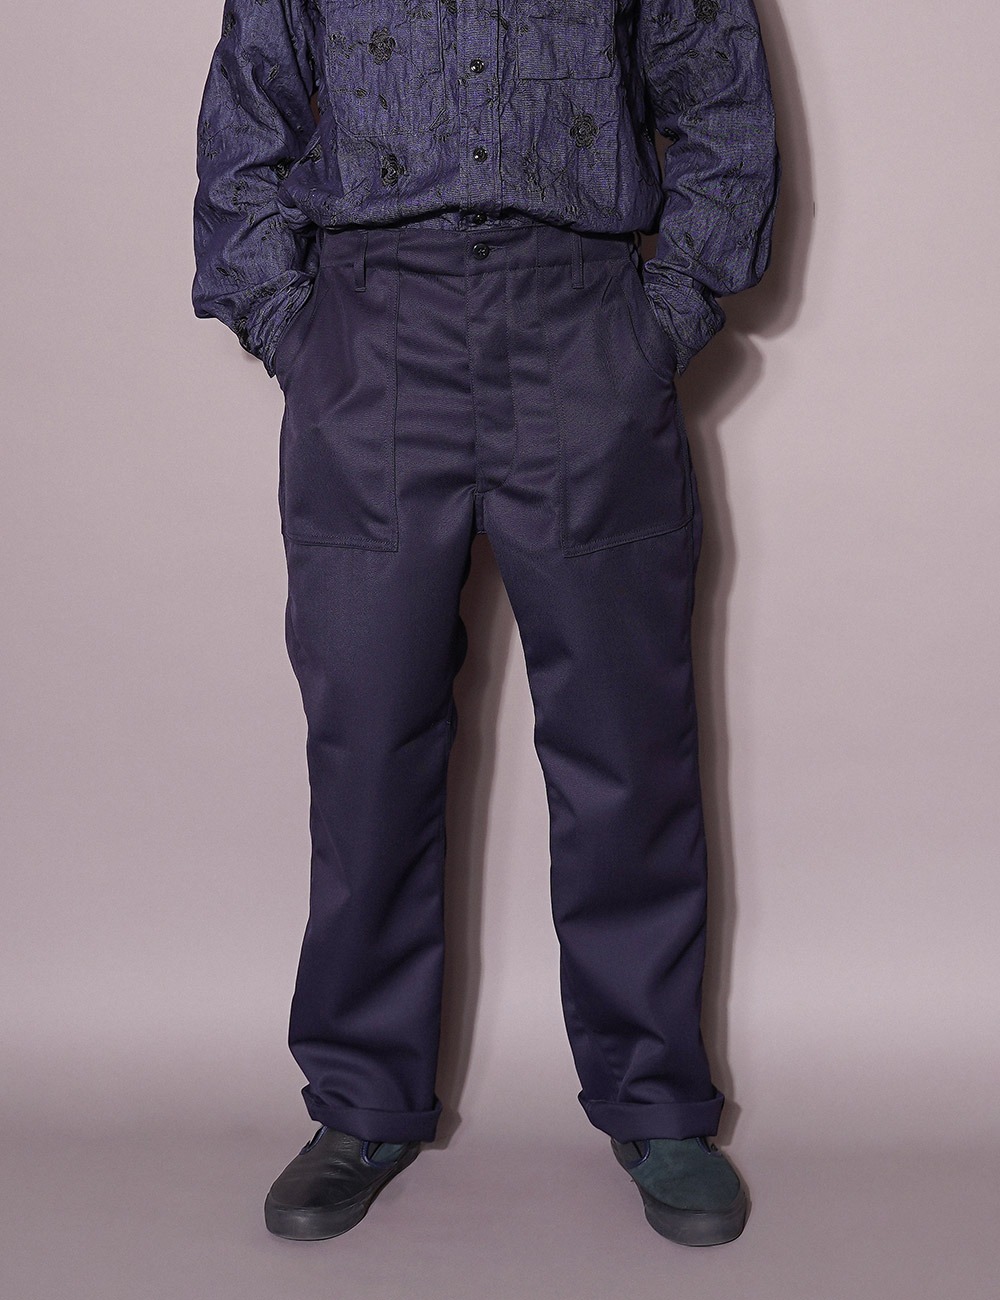 EG WORKDAY : FATIGUE PANTS (DK.NAVY)